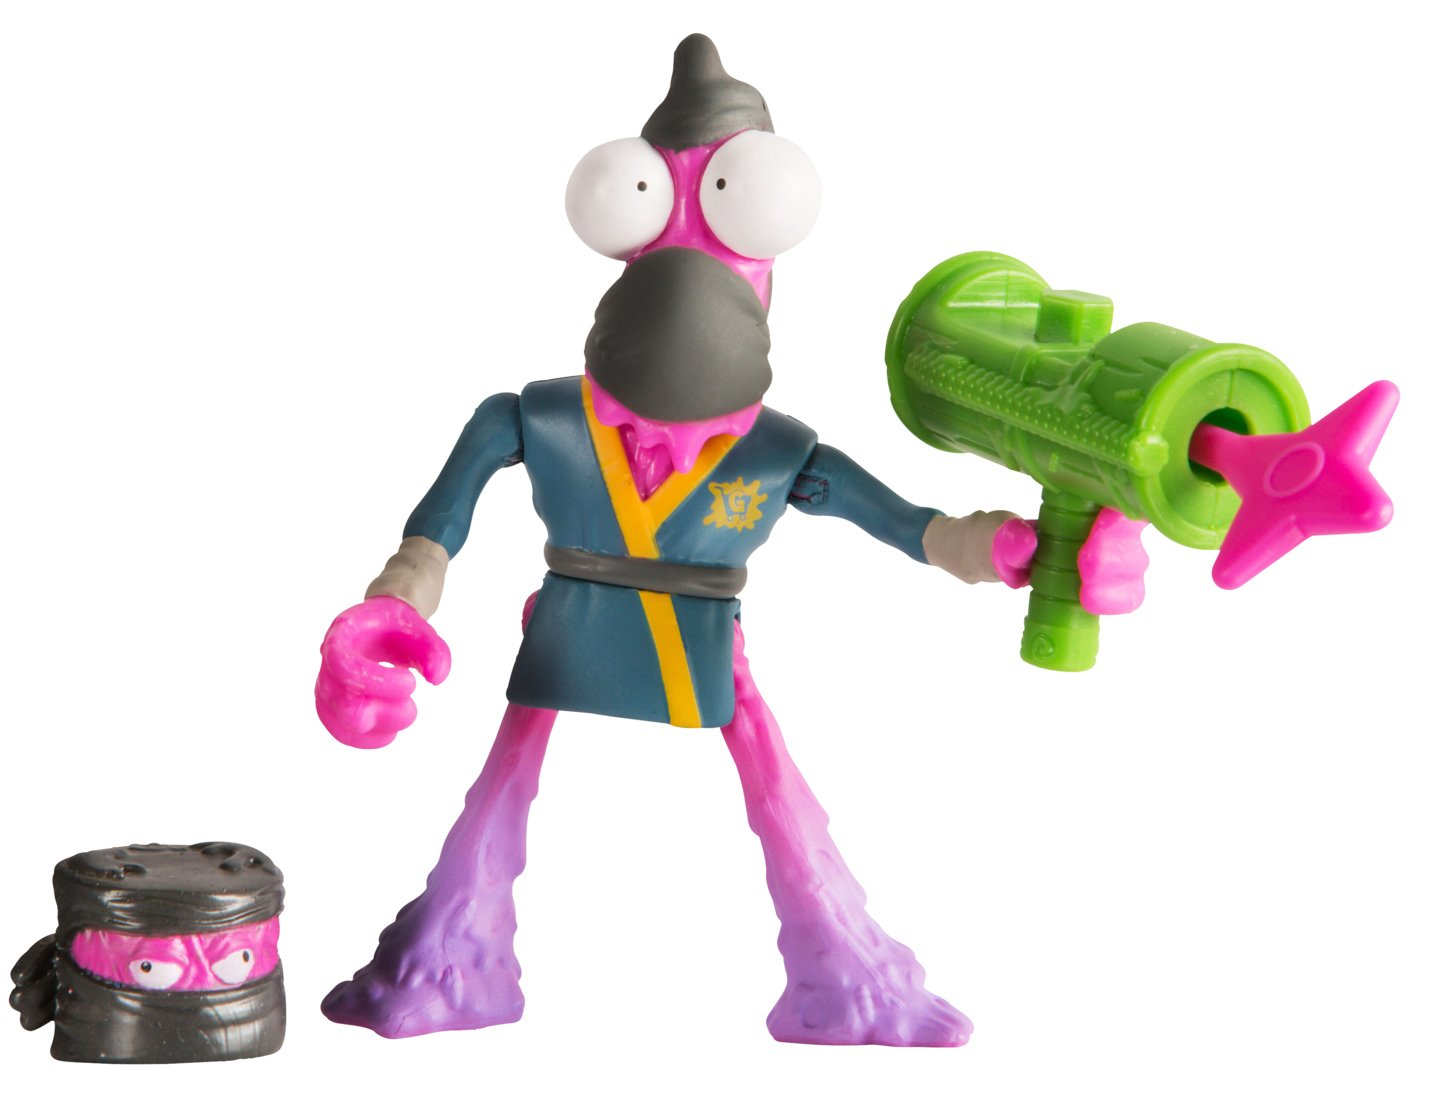 Putrid Pizza Moose Toys 69157 Grossery Gang The Time Wars Action Figure